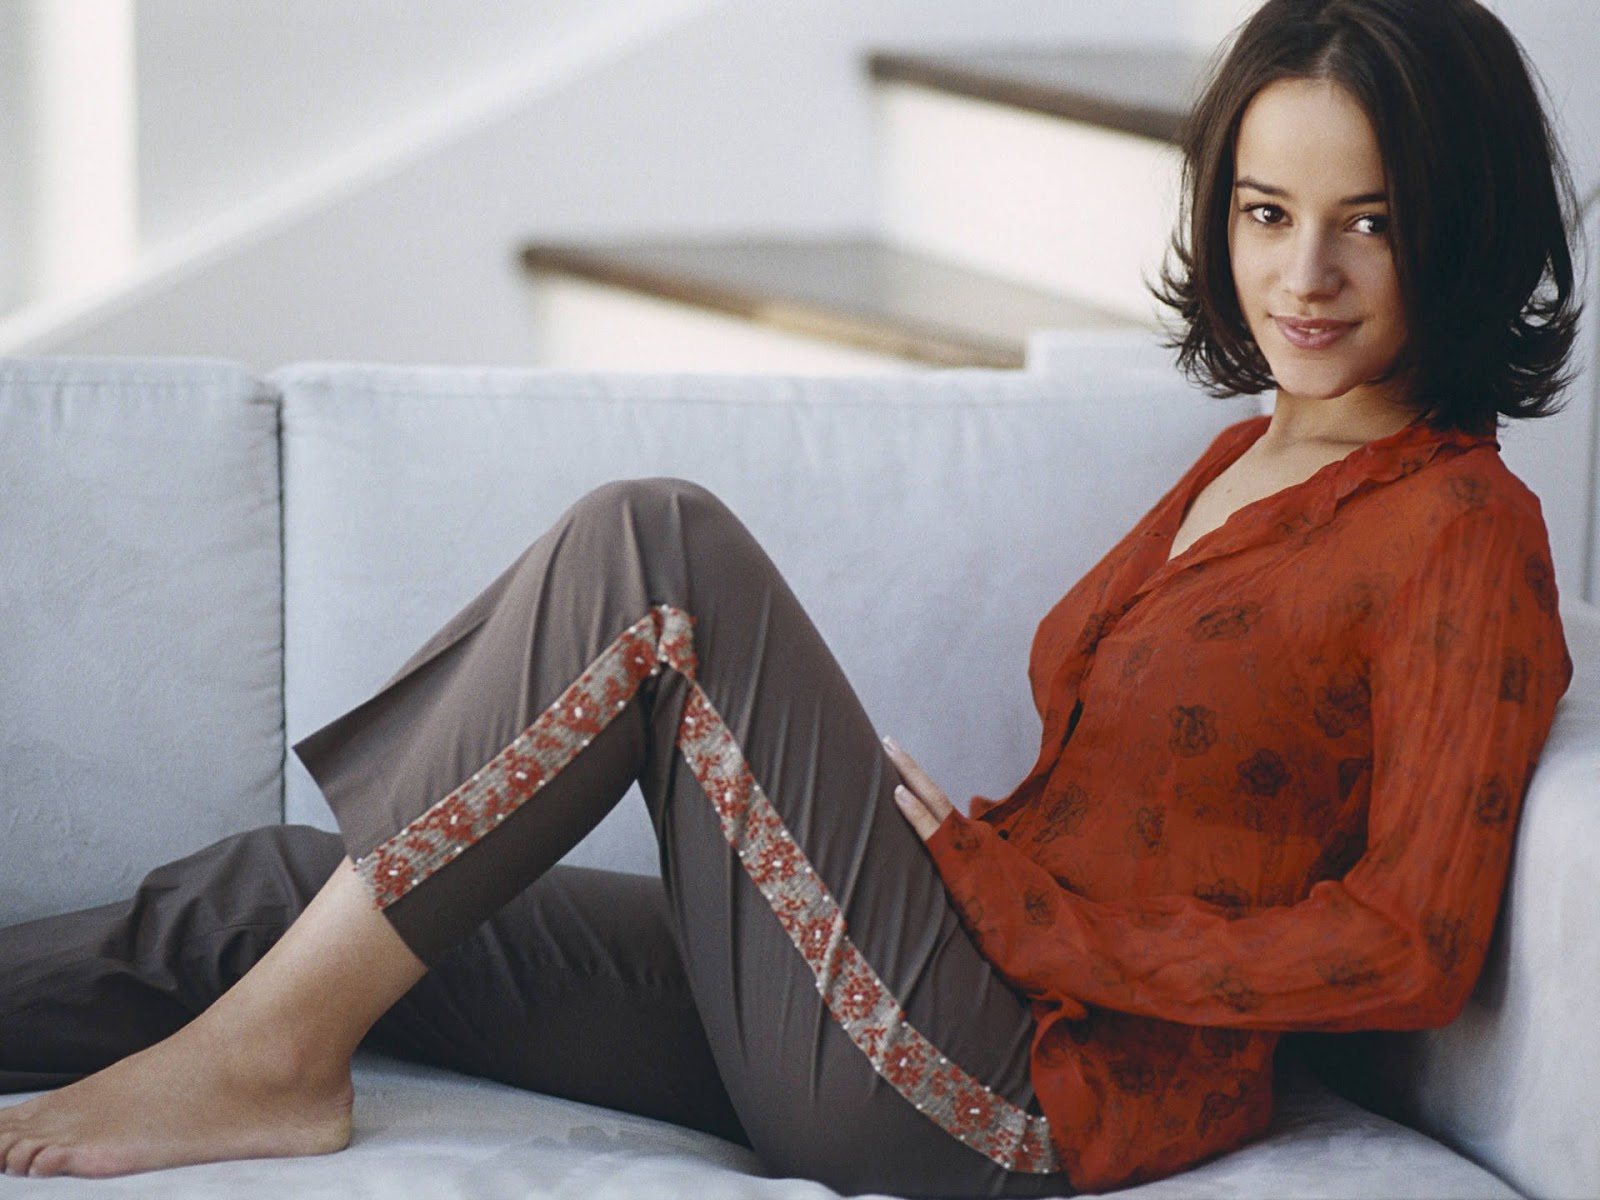 Wallpaper India: 30 French Singer Alizee Beautiful Girl HD Wallpapers